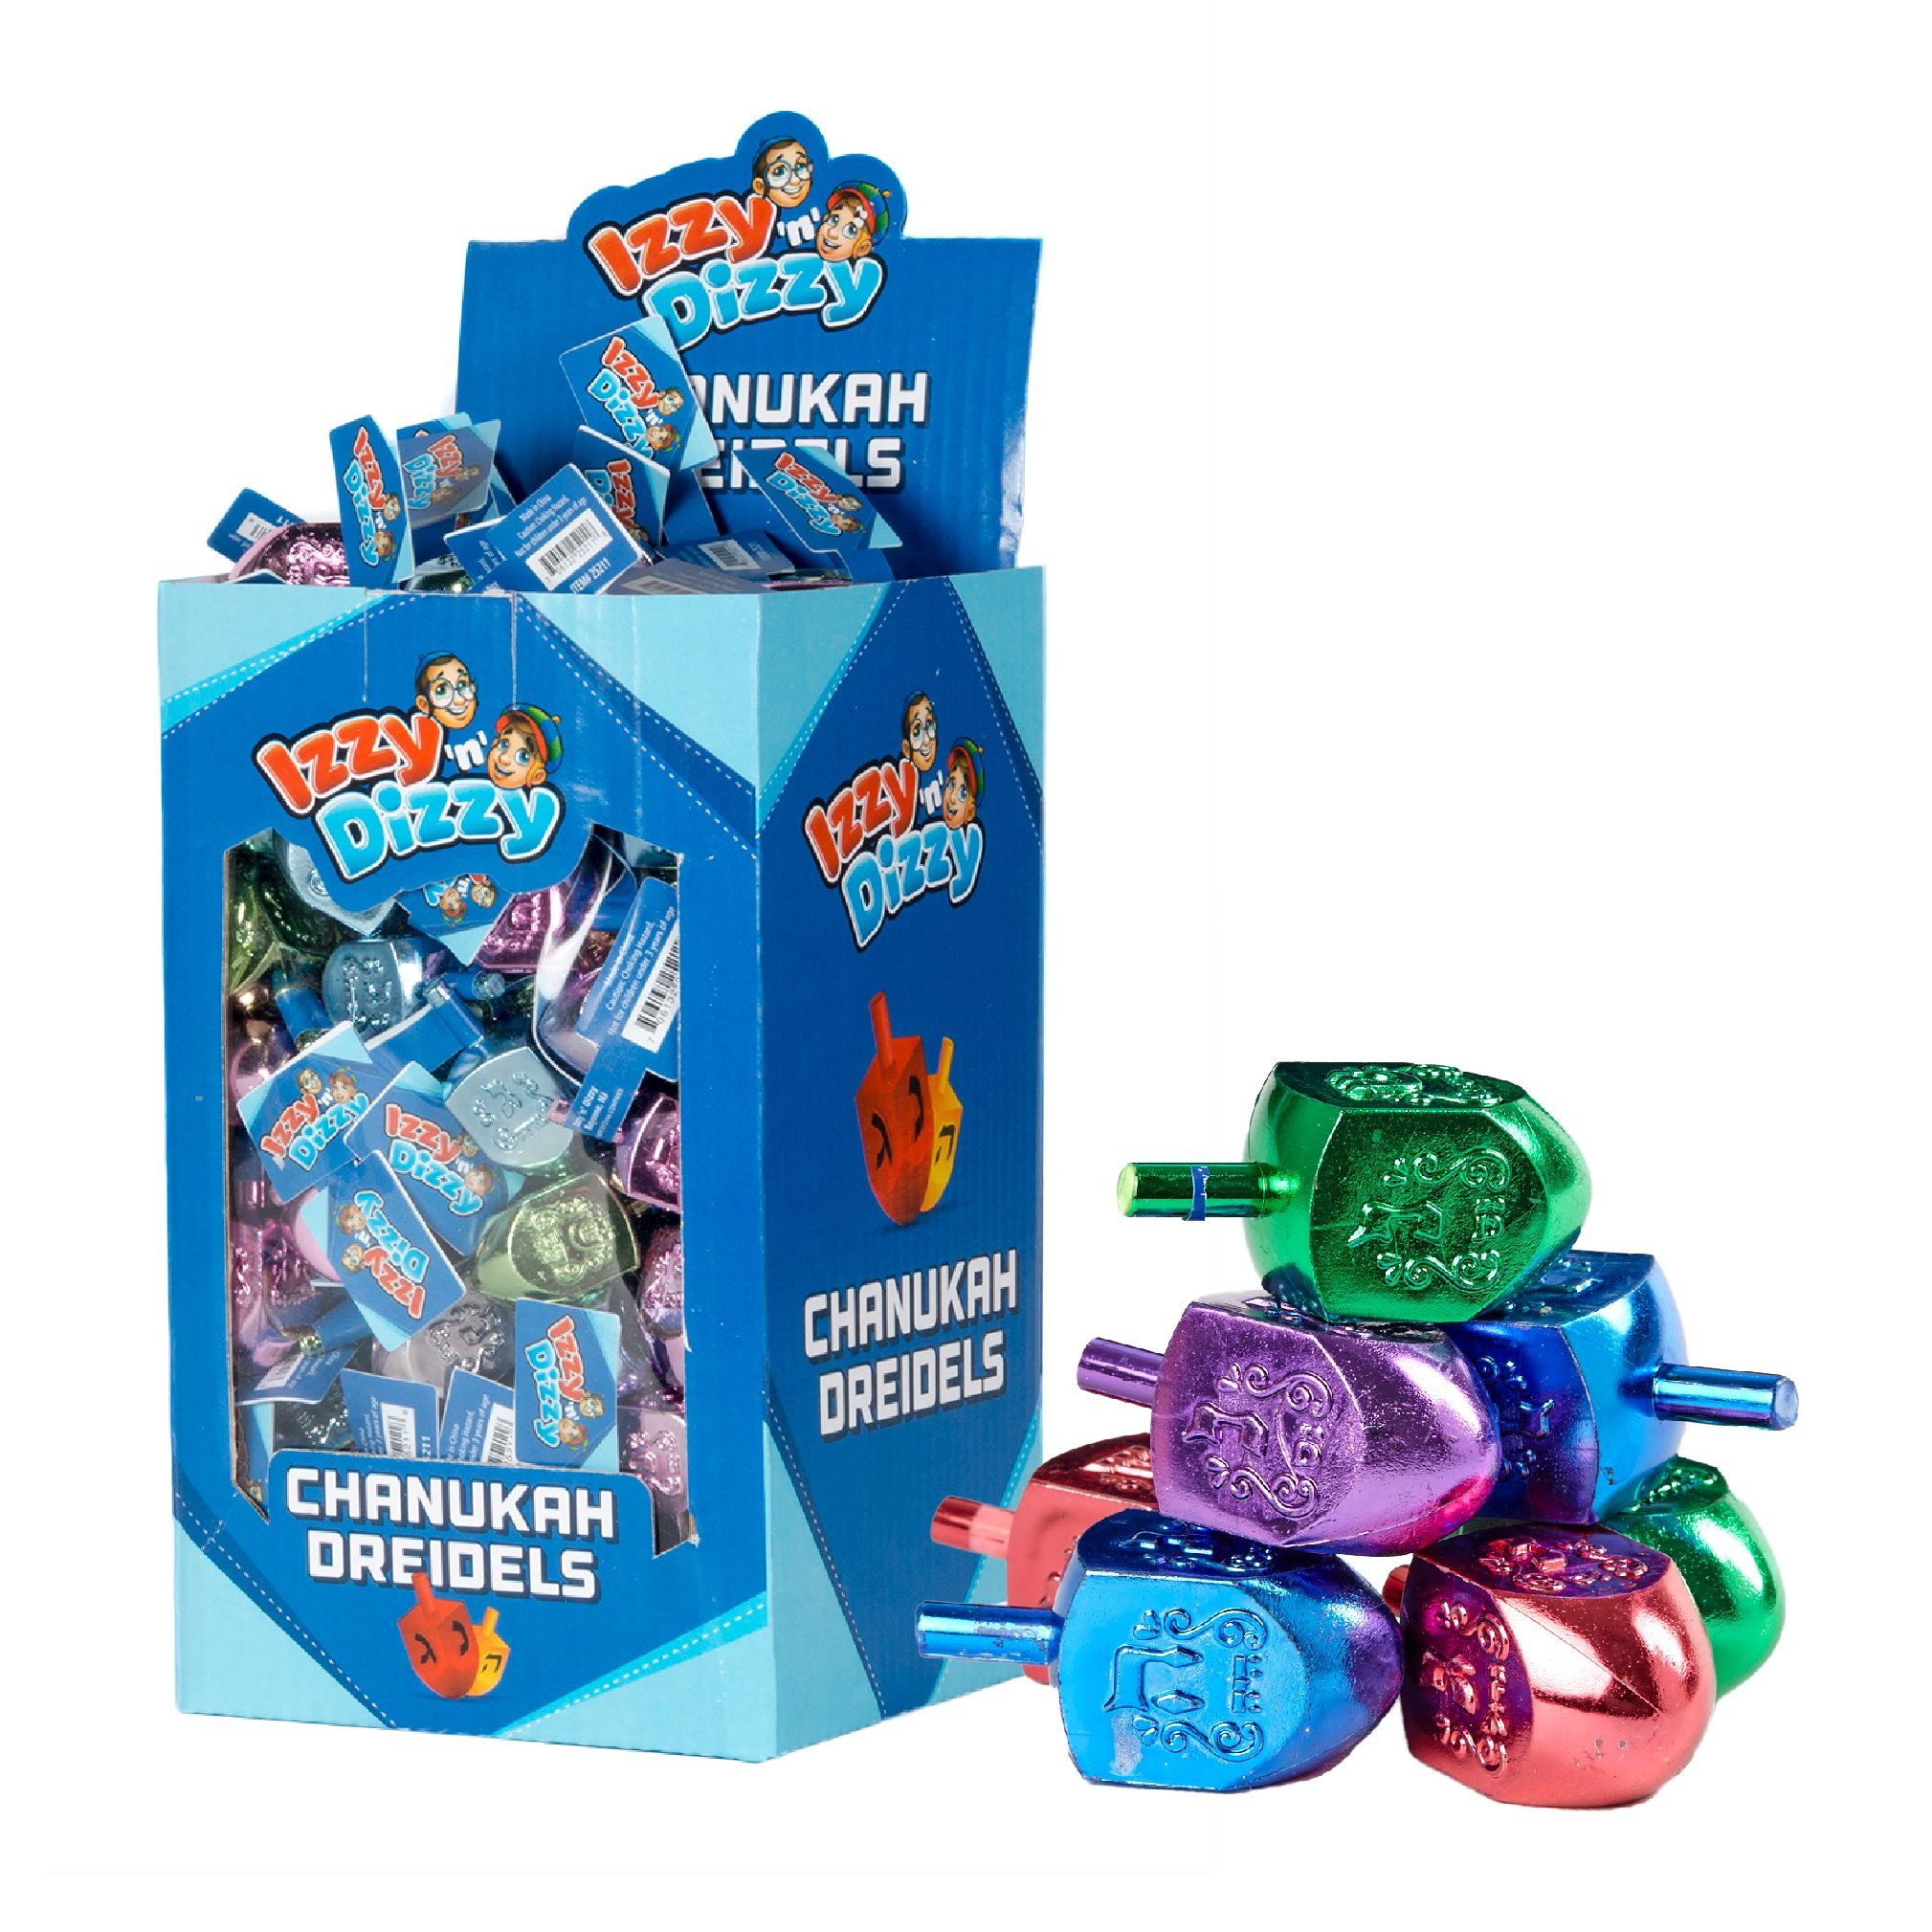 50 Large Dreidels - Metallic Colored - Classic Chanukah Spinning Draidel Game, Gift and Prize - Bulk Value Pack - By Izzy n Dizzy by Izzy 'n' Dizzy